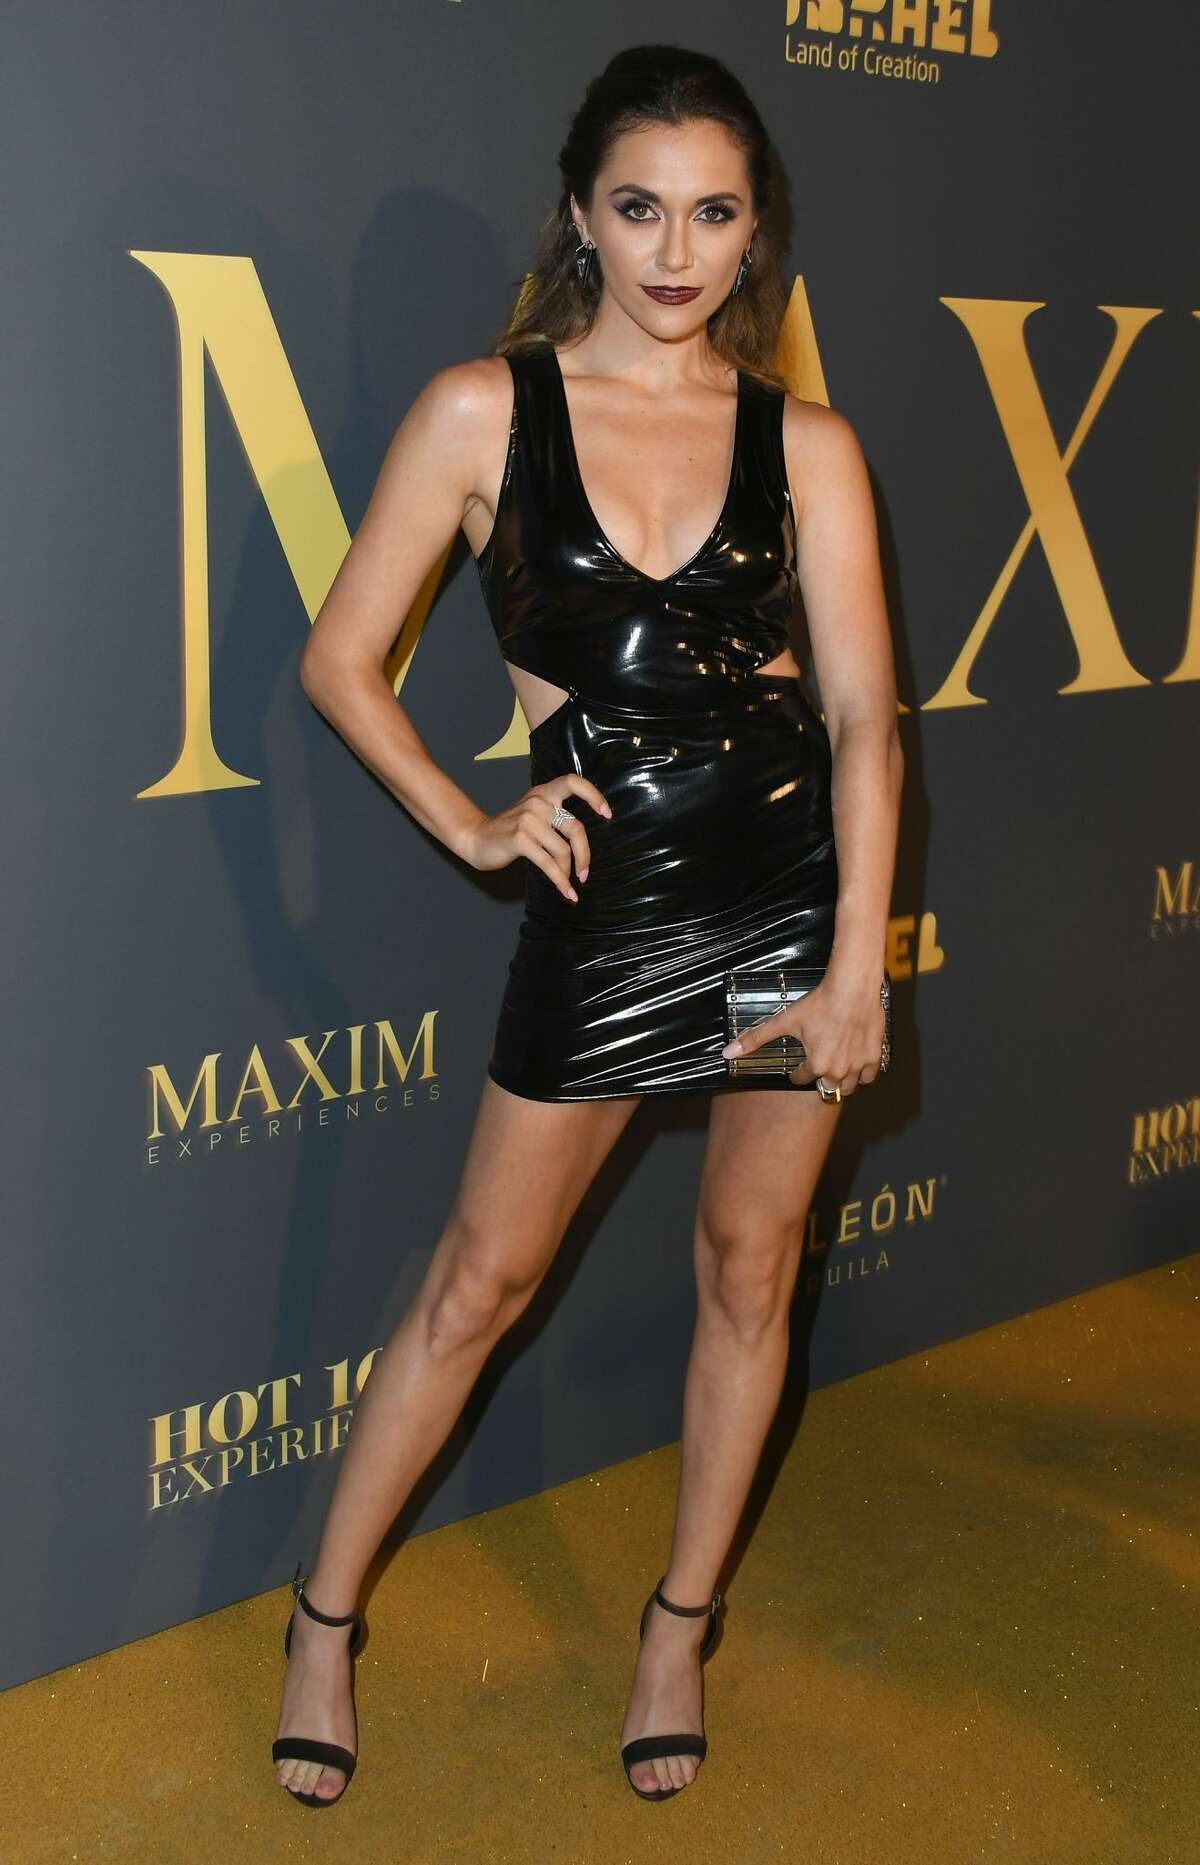 Alyson Stoner at The Maxim Hot 100 Experience at Hollywood Palladium on July 21, 2018 in Los Angeles, California.